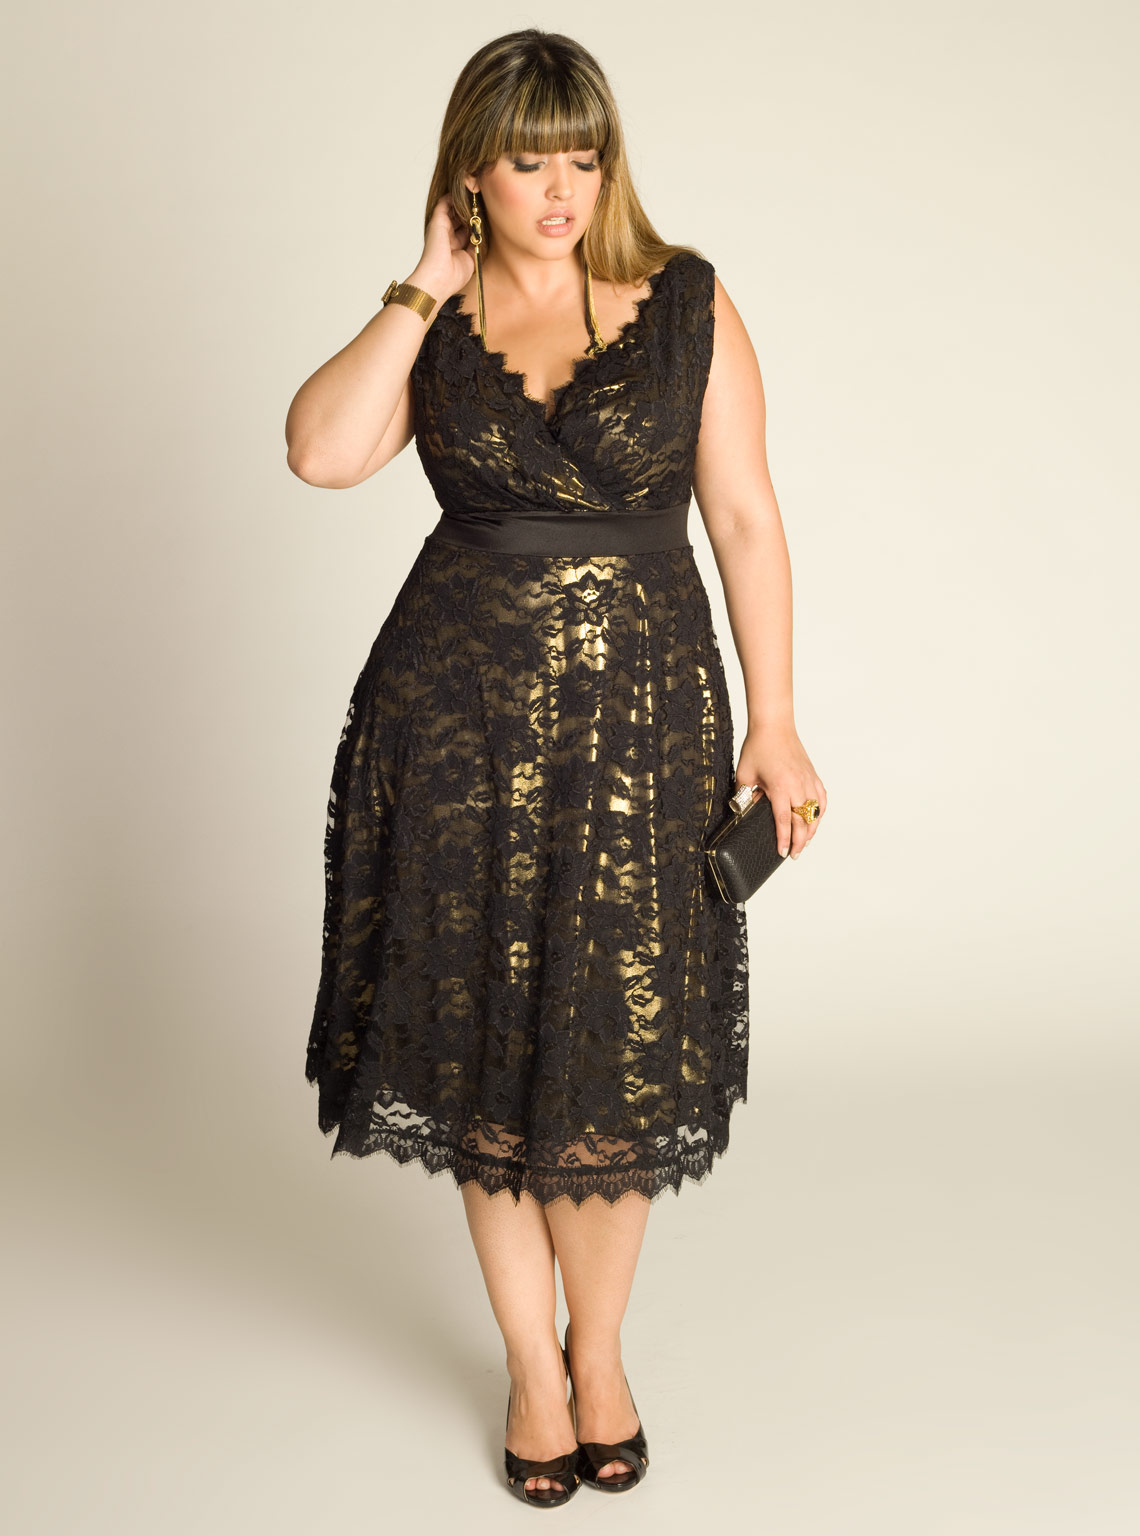 Plus Size Vintage Clothing